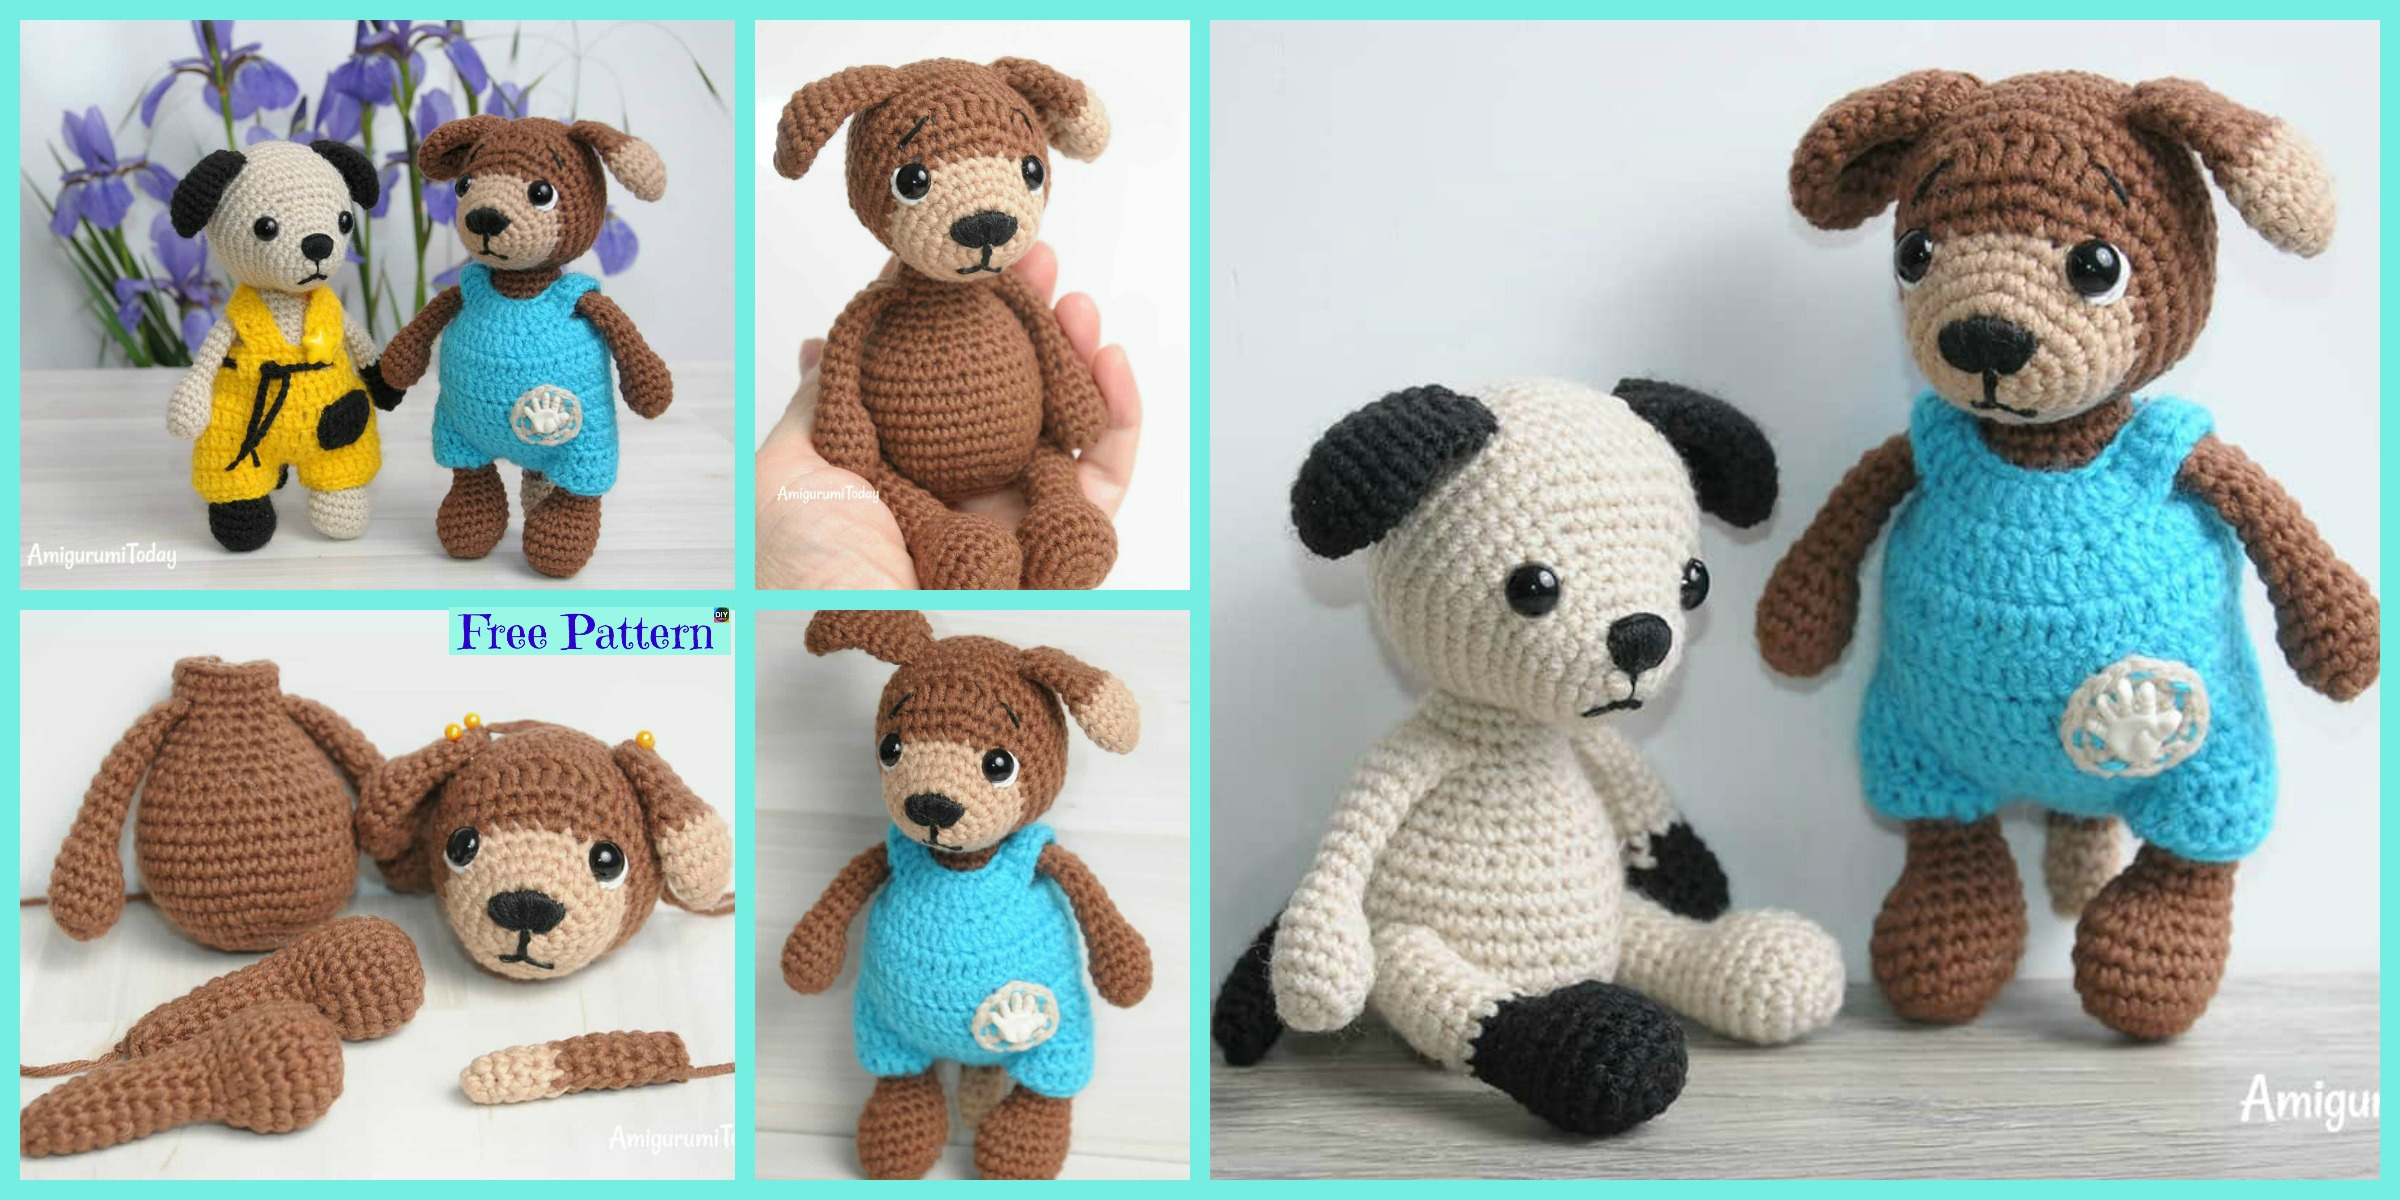 Adorable Crochet Amigurumi Dog – Free Pattern